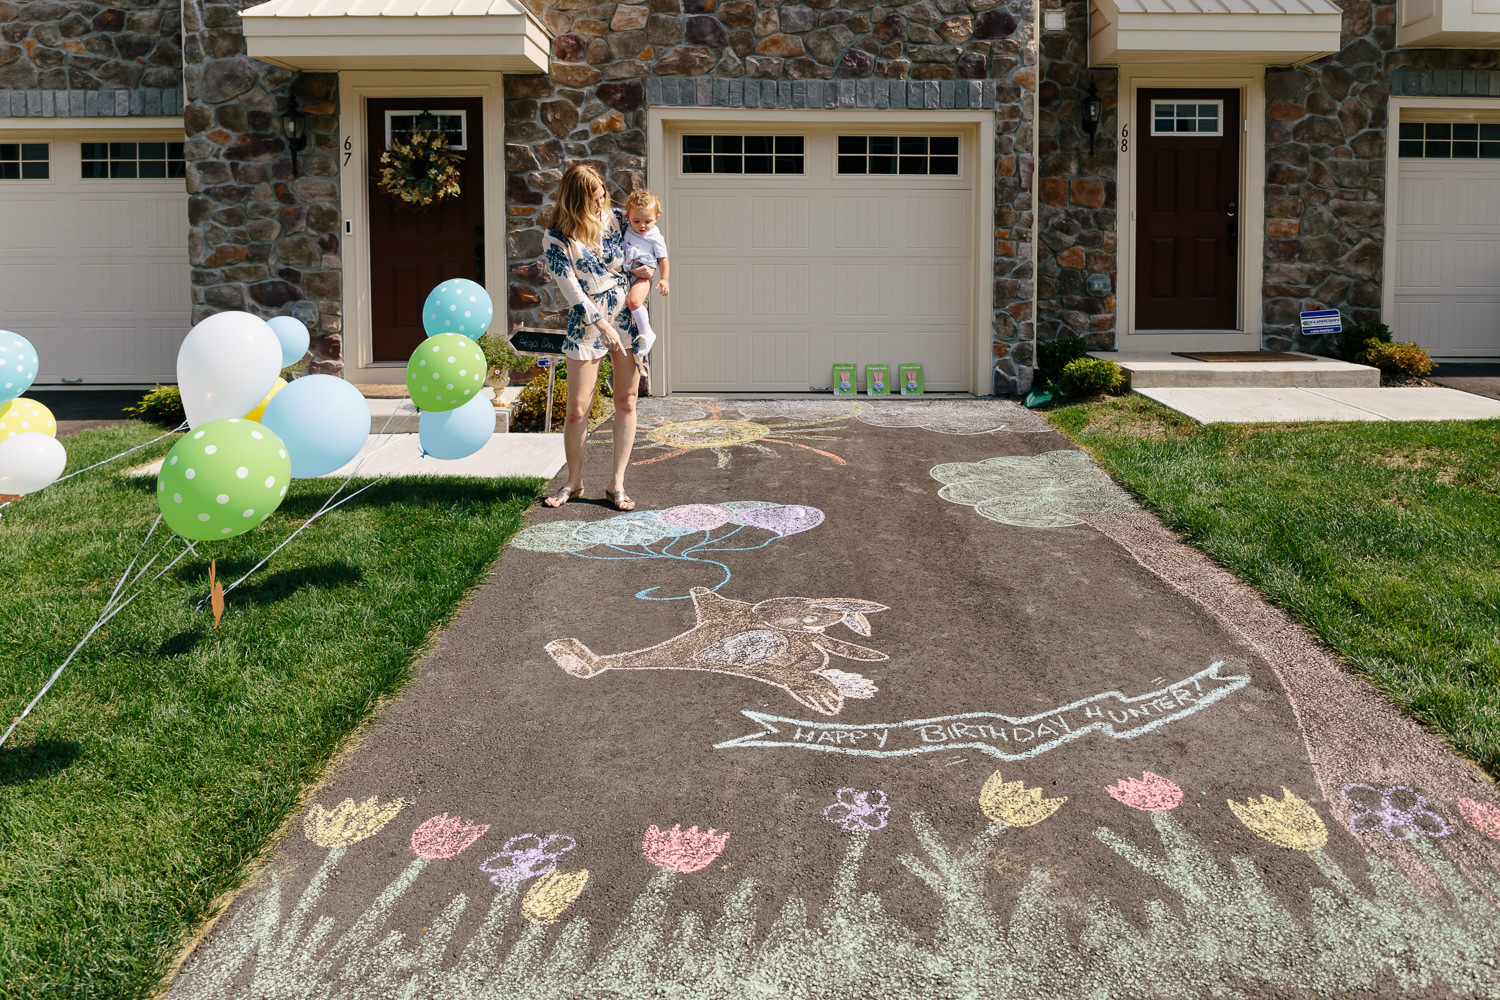 1st birthday party chalk decorations in driveway